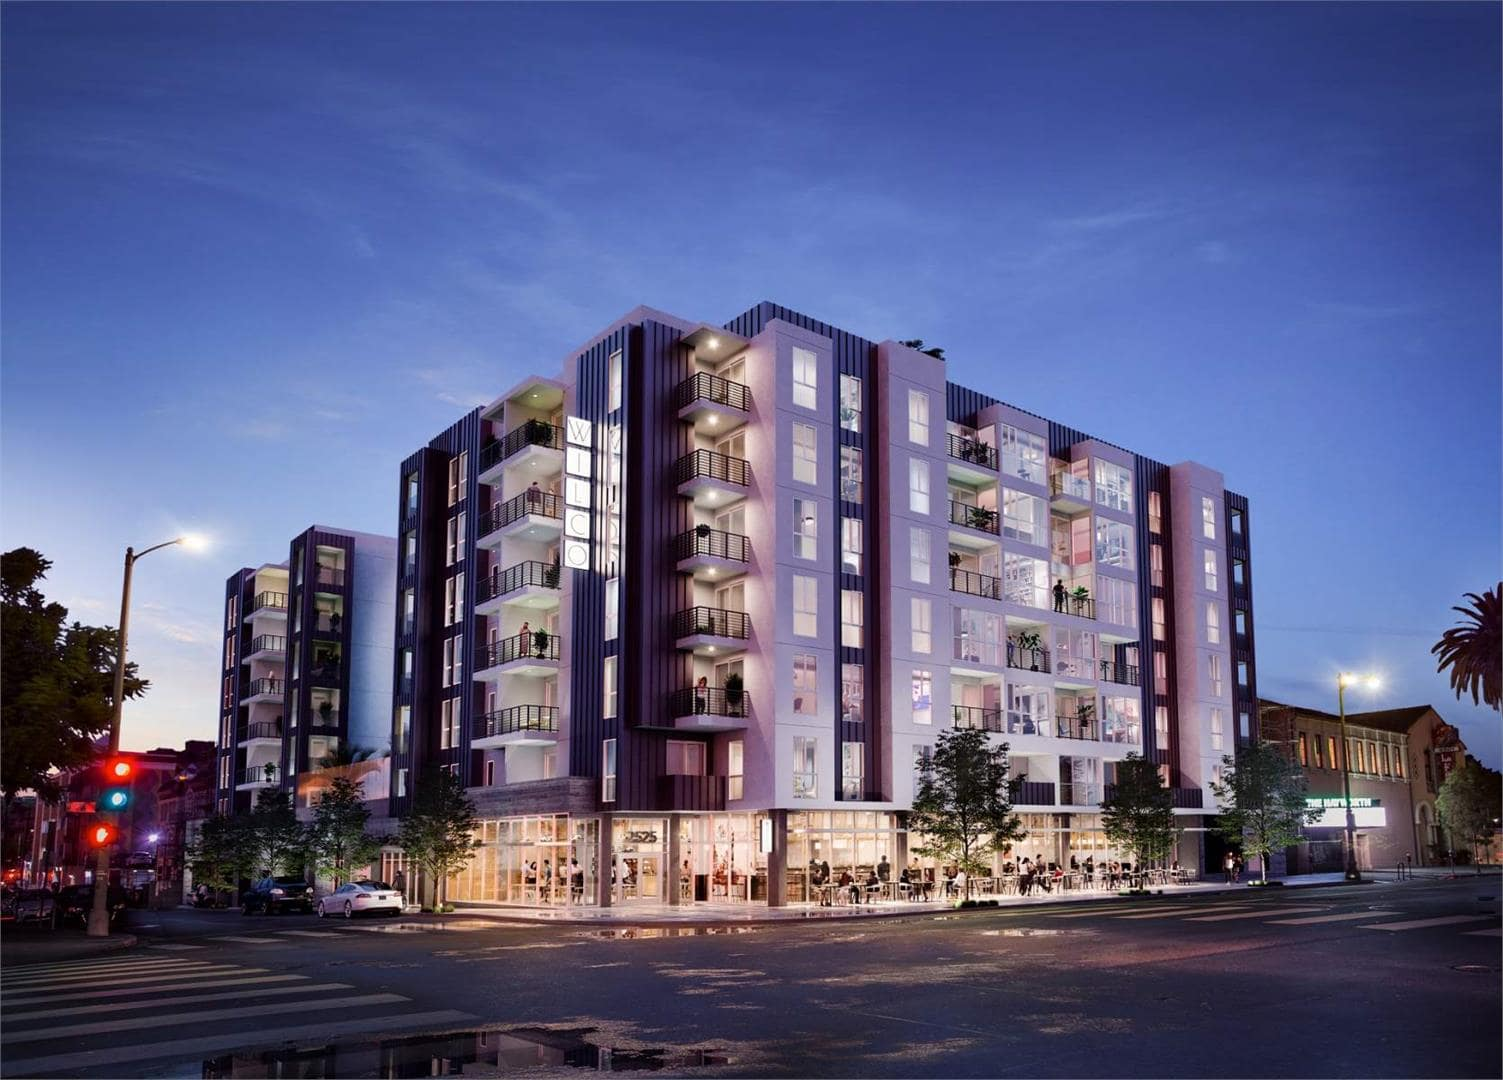 3 New Apartments Near Dtla With Rents Under 2 000 Per Month